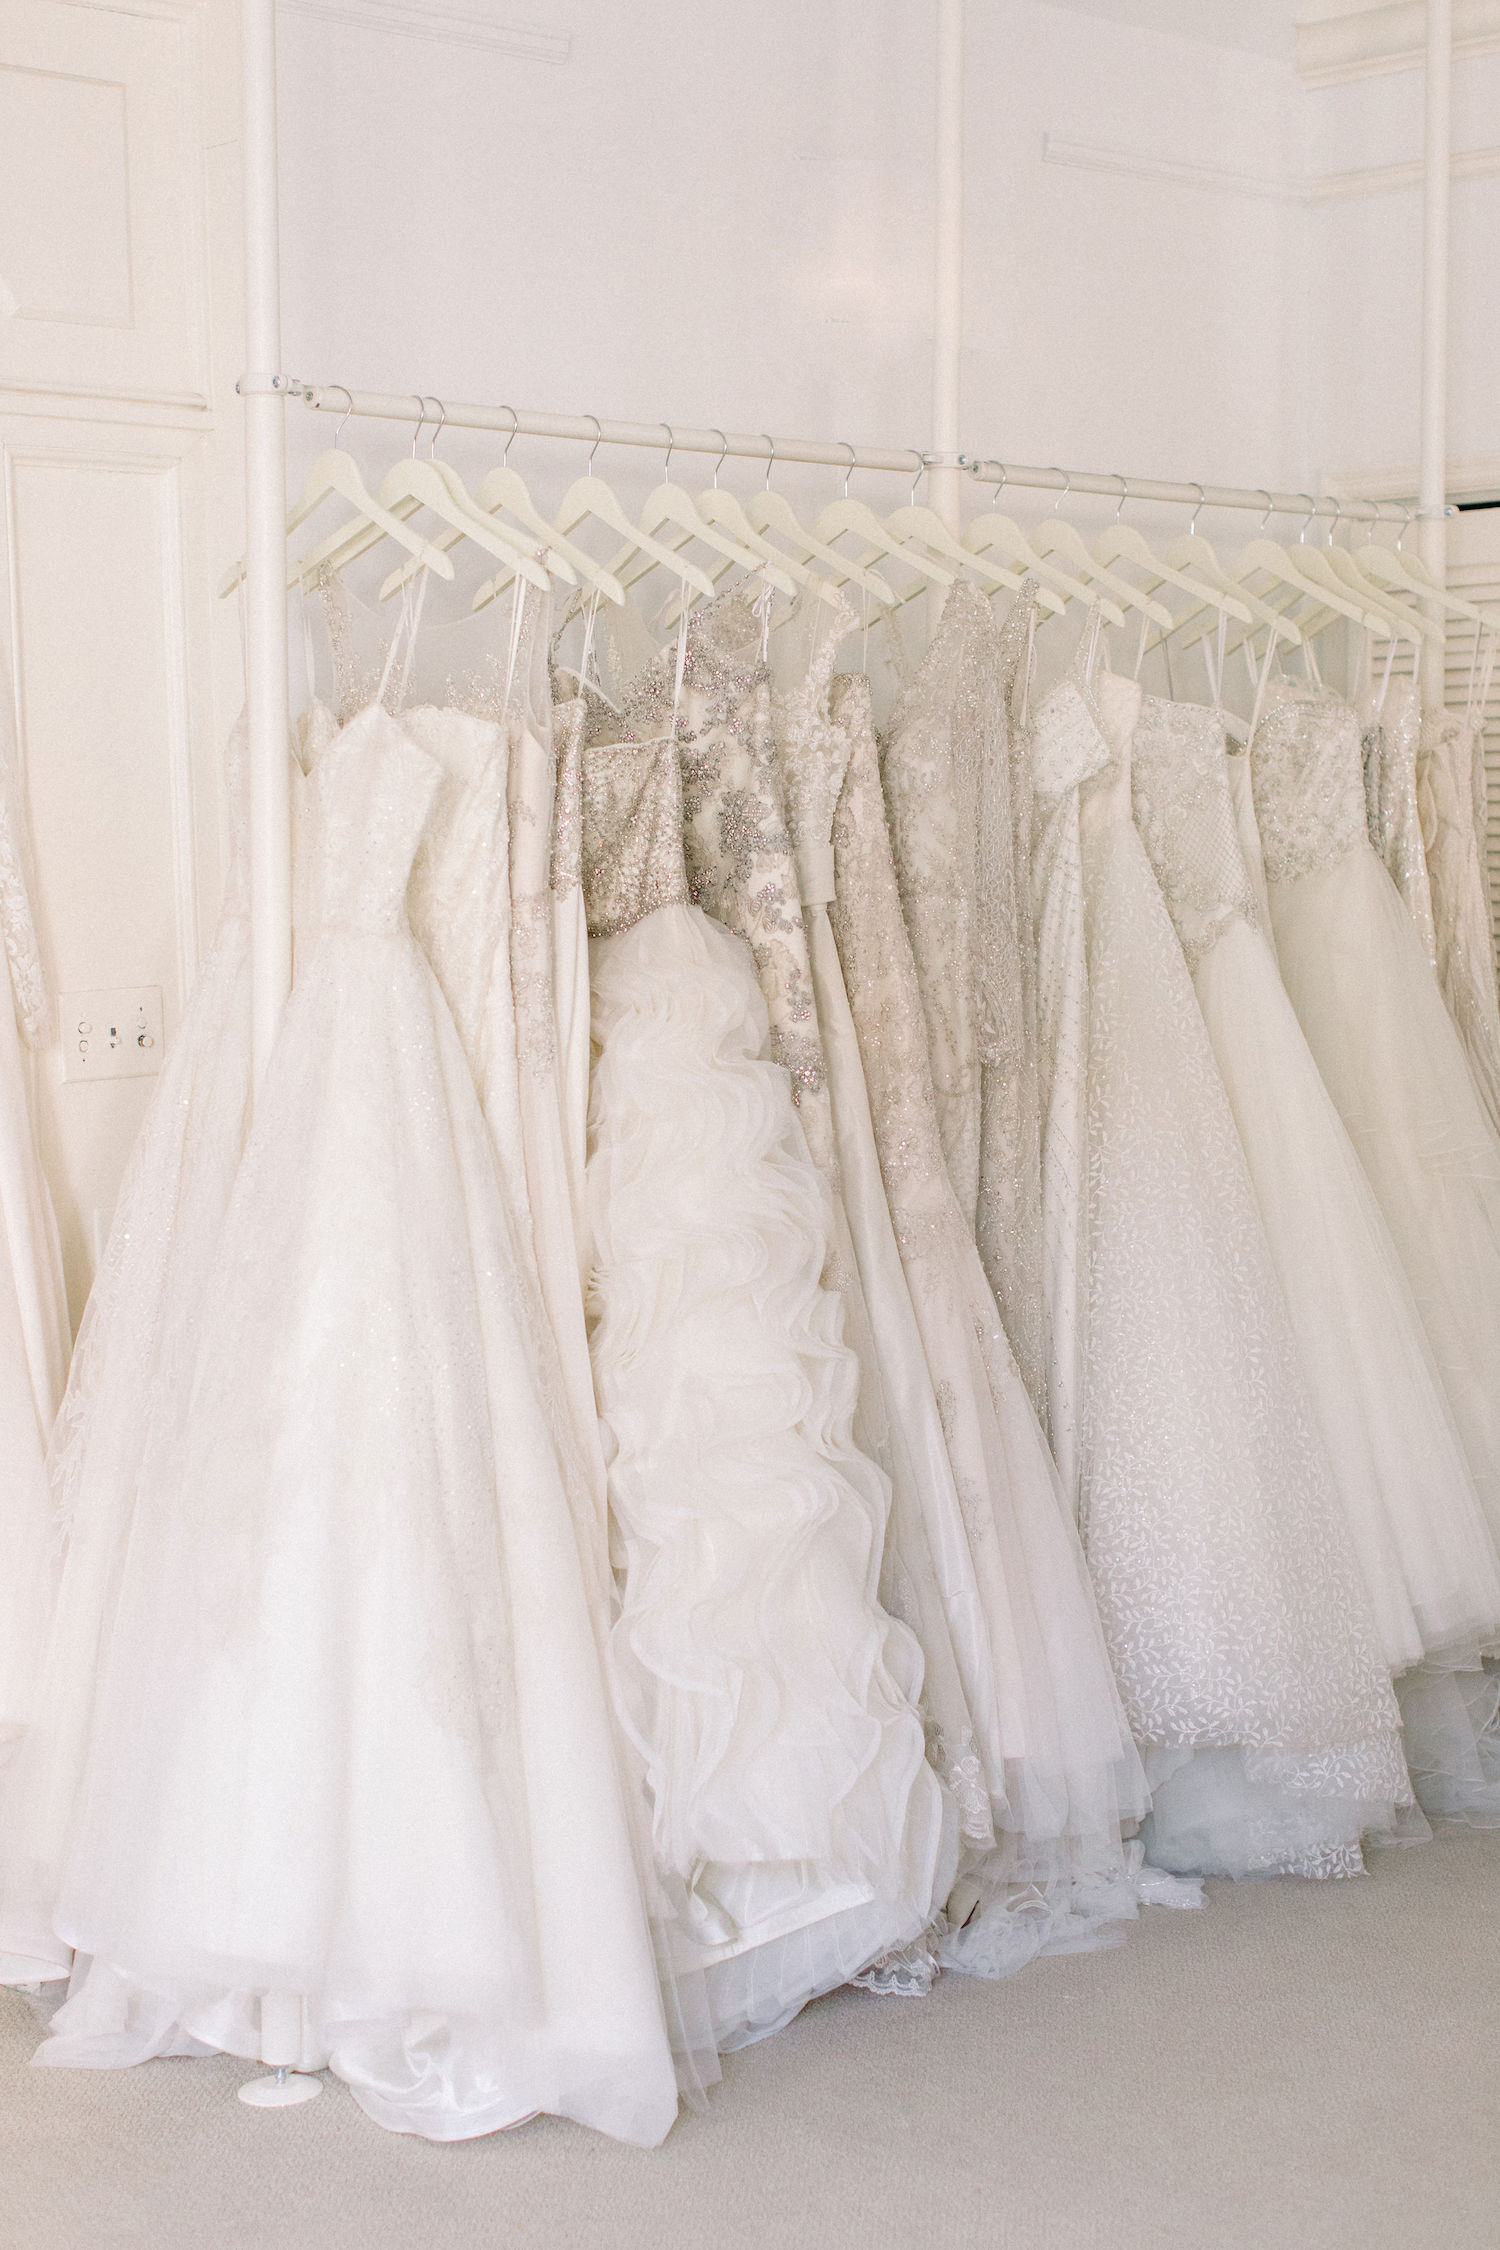 beaded wedding gowns at Magnolia Bride in Charleston SC.JPG